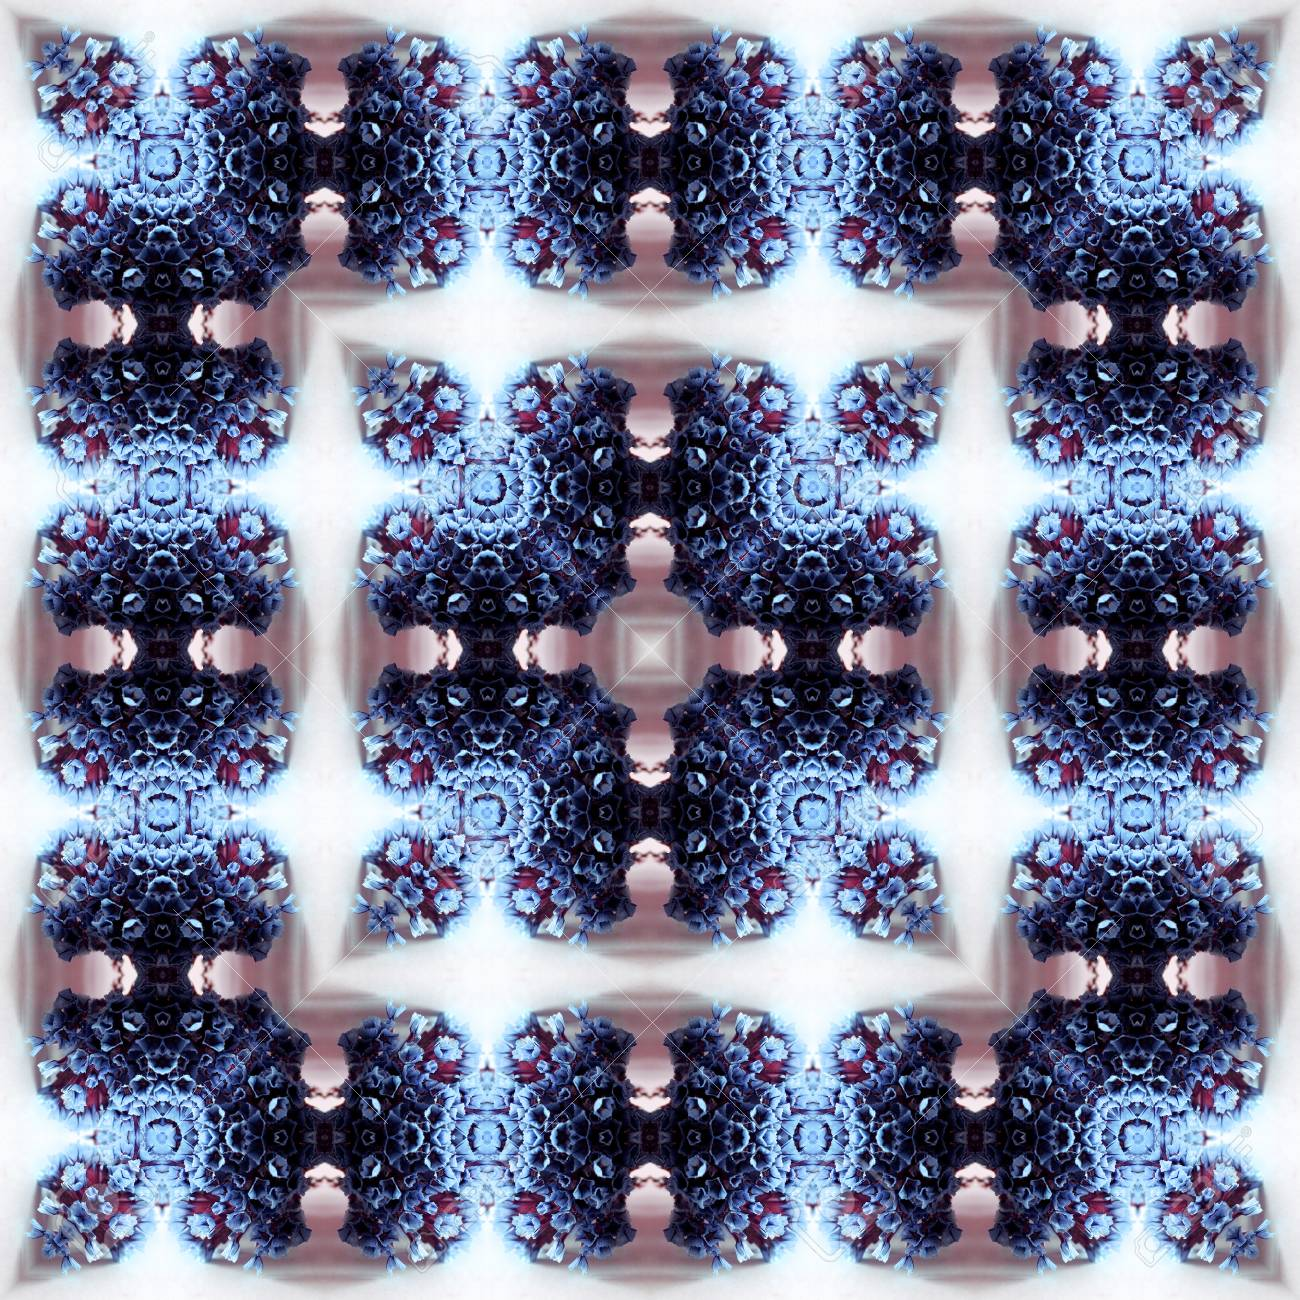 Abstract flowers seamless pattern background. Kaleidoscope from flowers. Hydraulic tile design. - 104075029